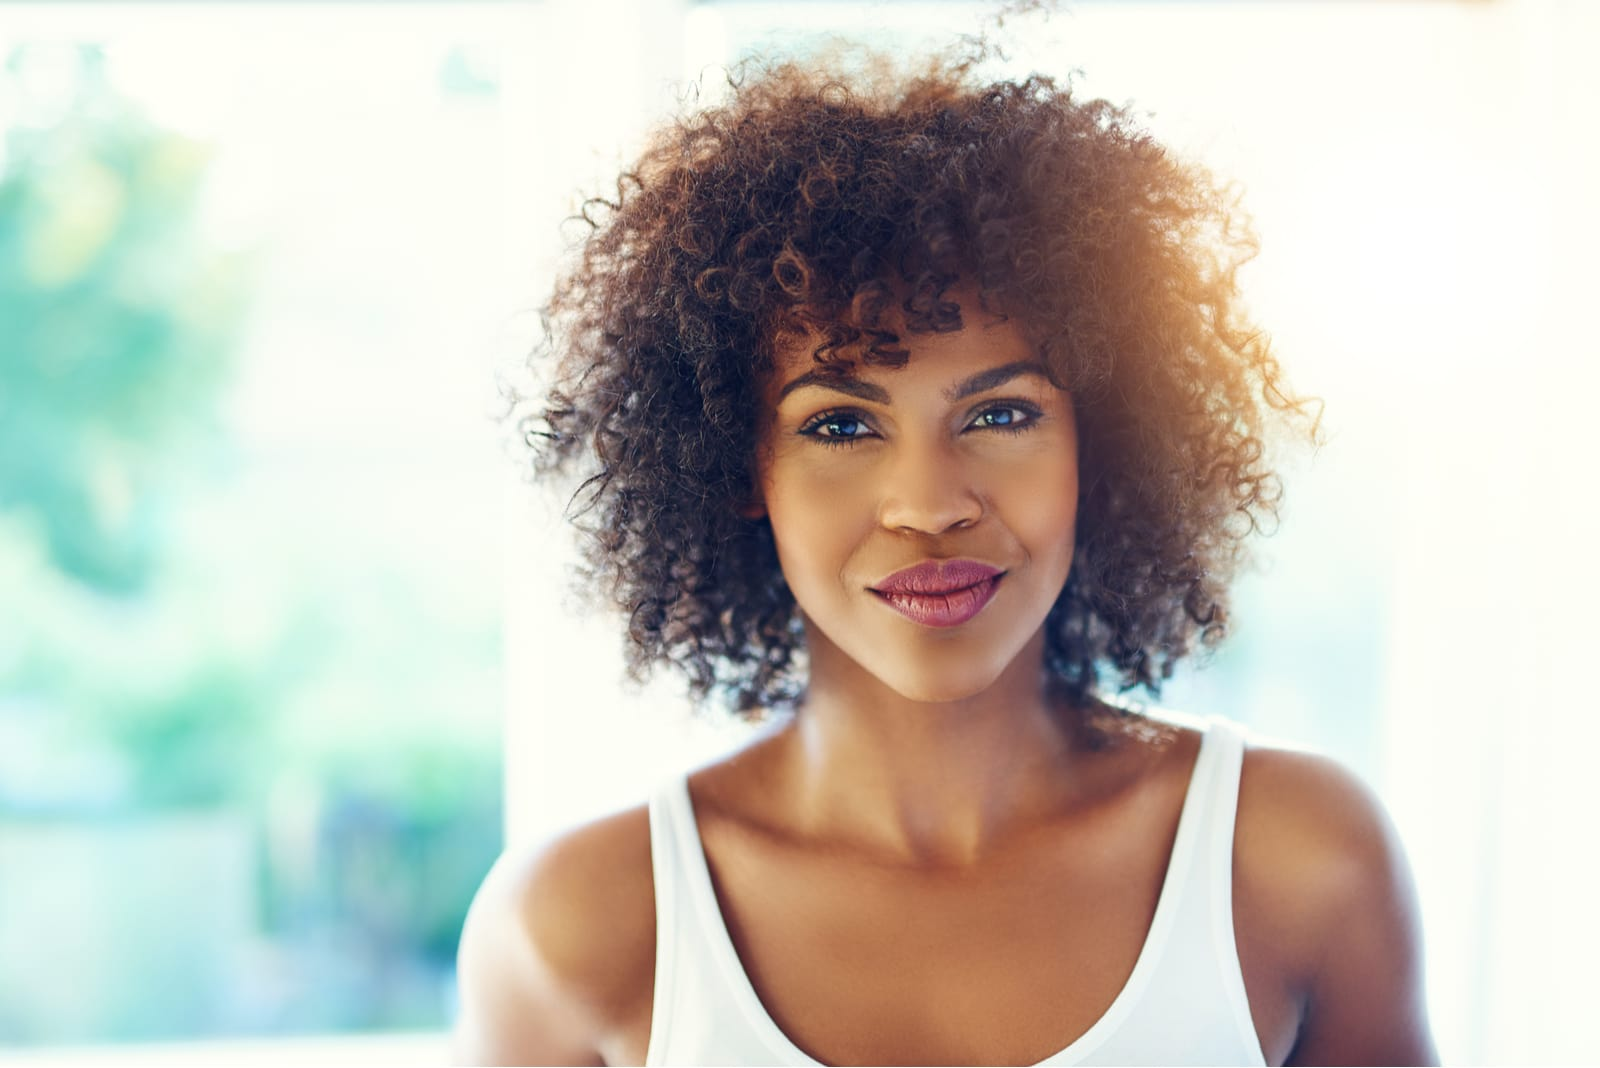 a portrait of an attractive black woman in a white undershirt